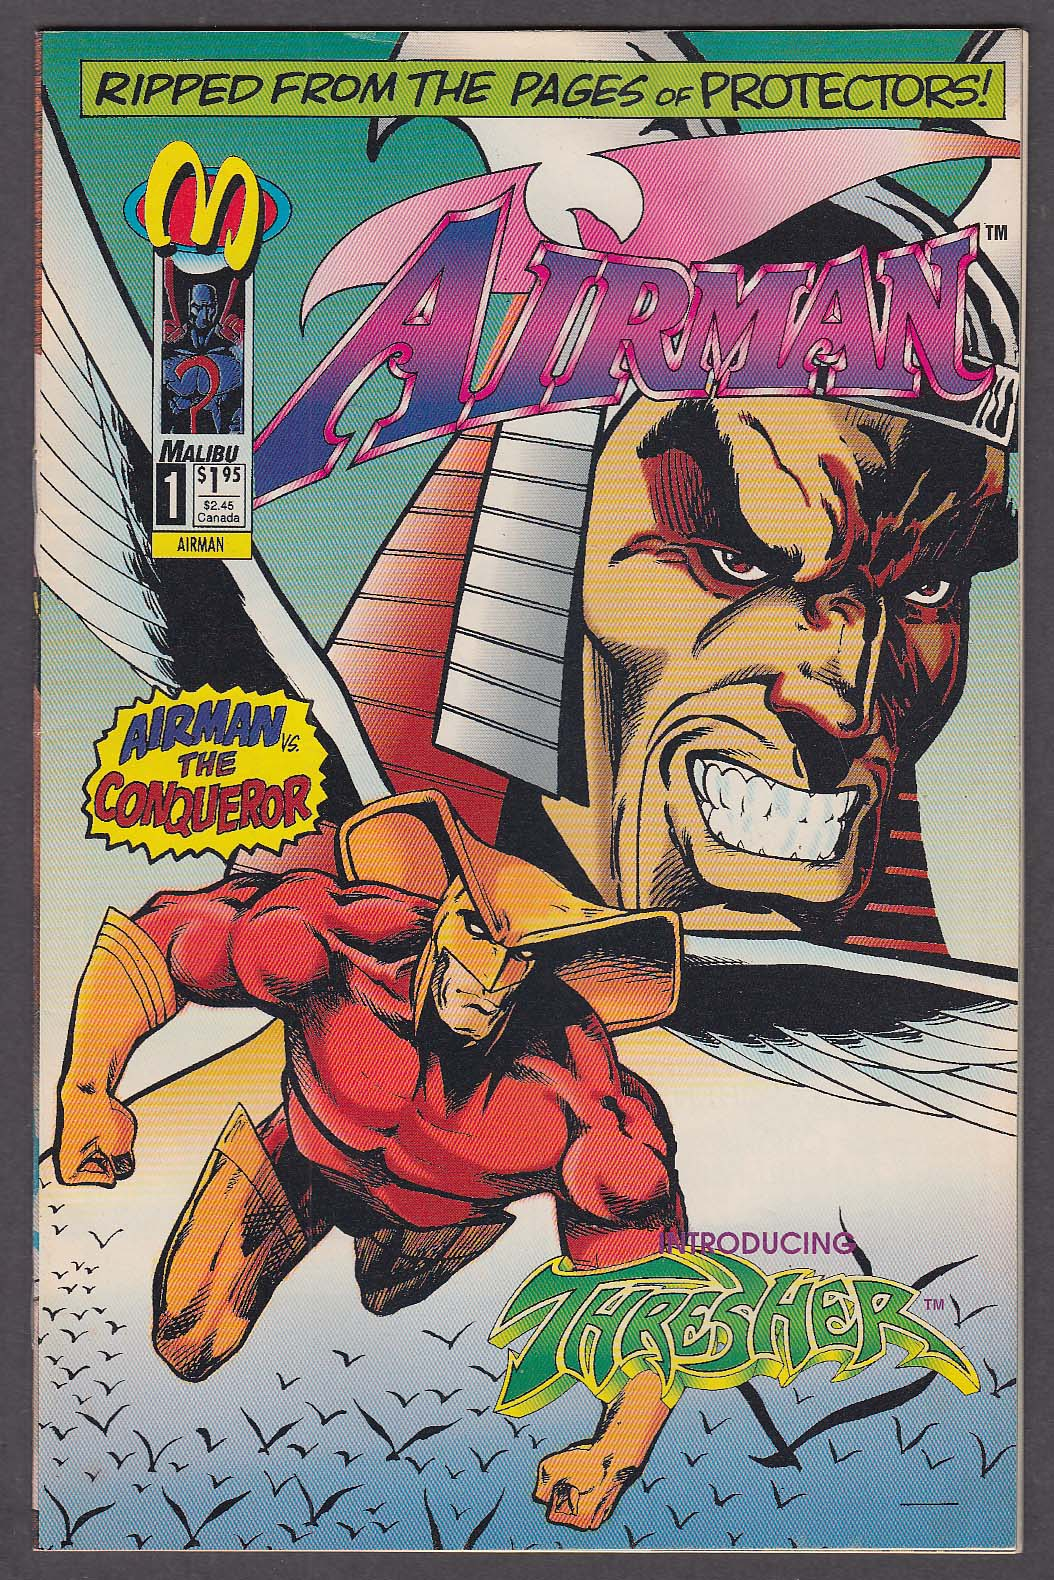 AIRMAN #1 Malibu comic book 1 1993 Thresher